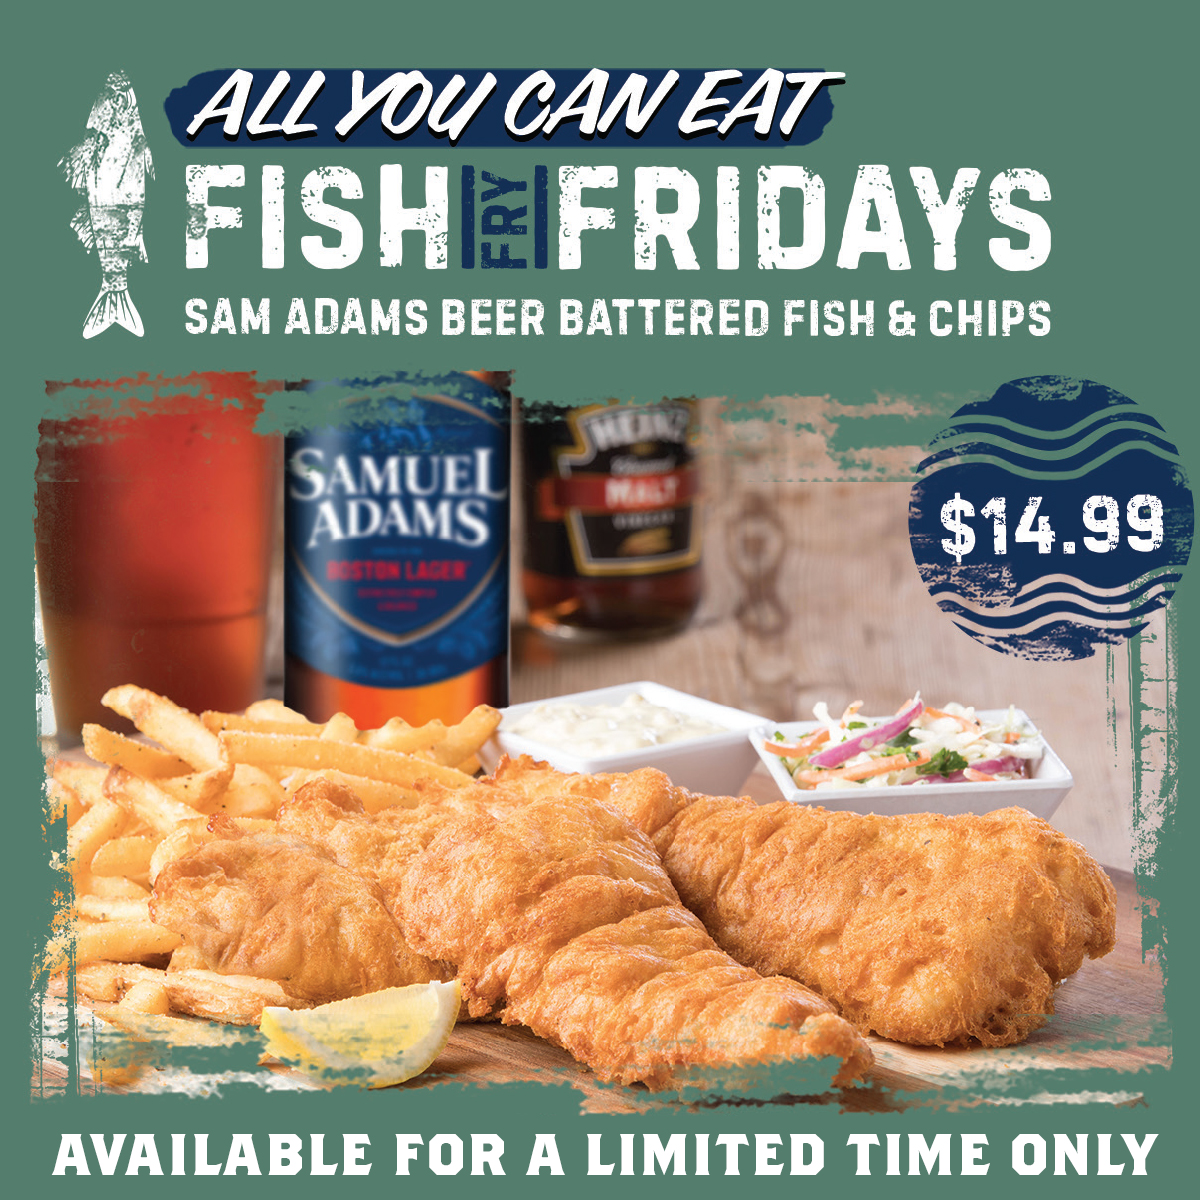 All You Can Eat Fish Fry Fridays for only $14.99